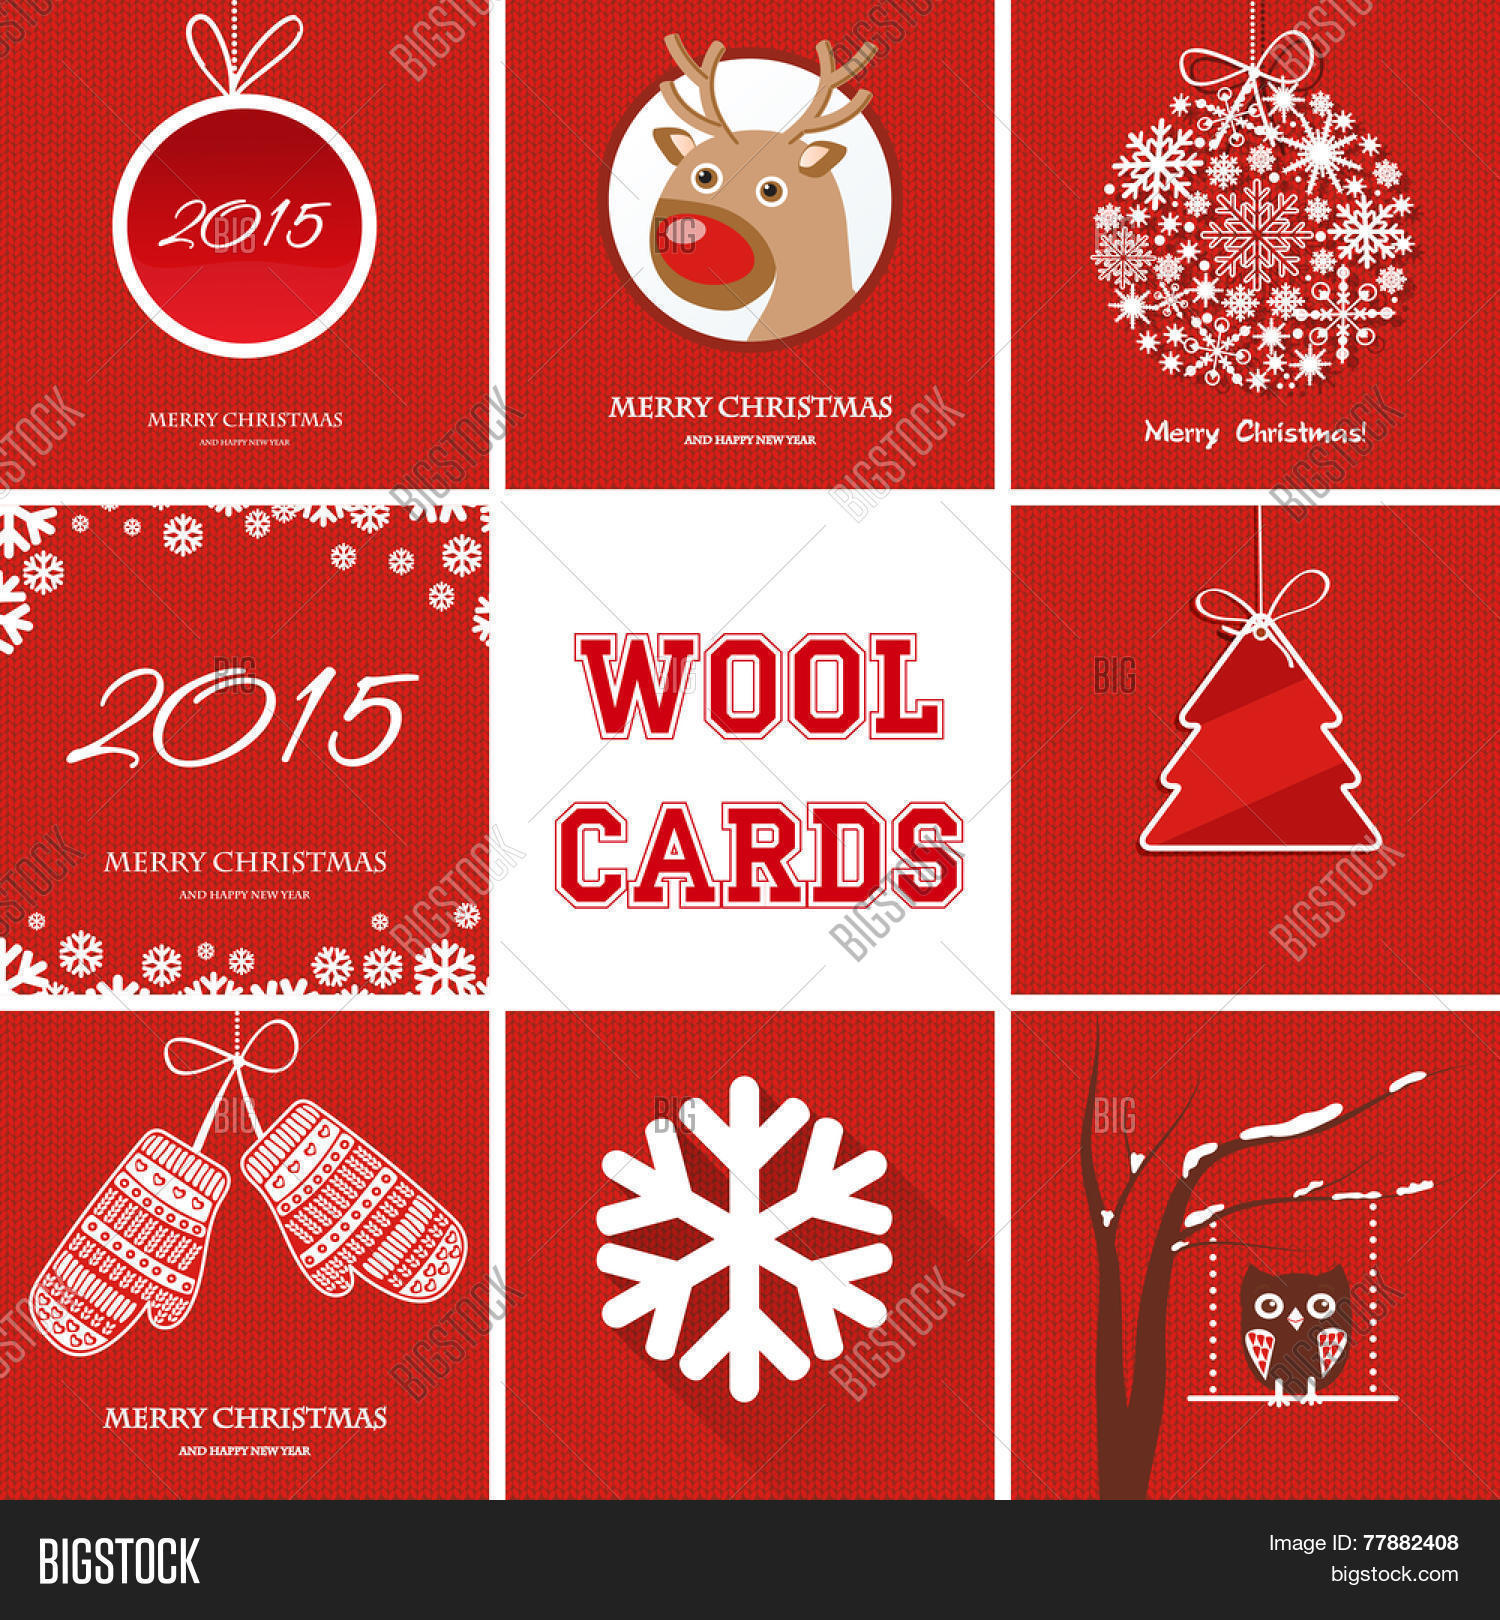 Christmas Cards Set Vector & Photo (Free Trial) | Bigstock